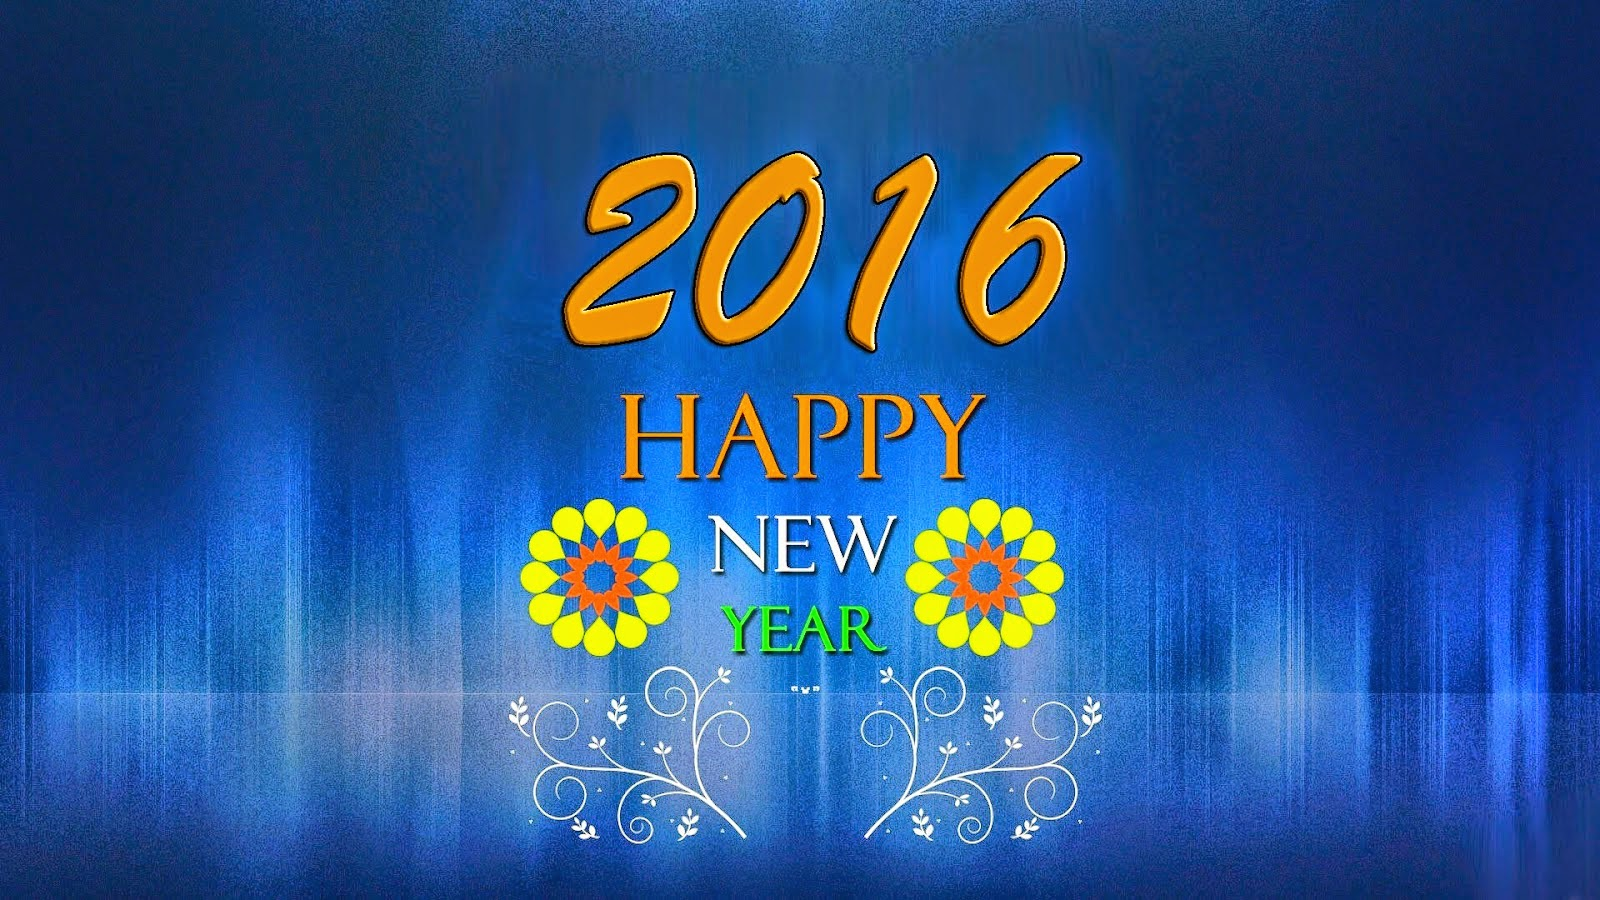 happy-new-year-2016 images